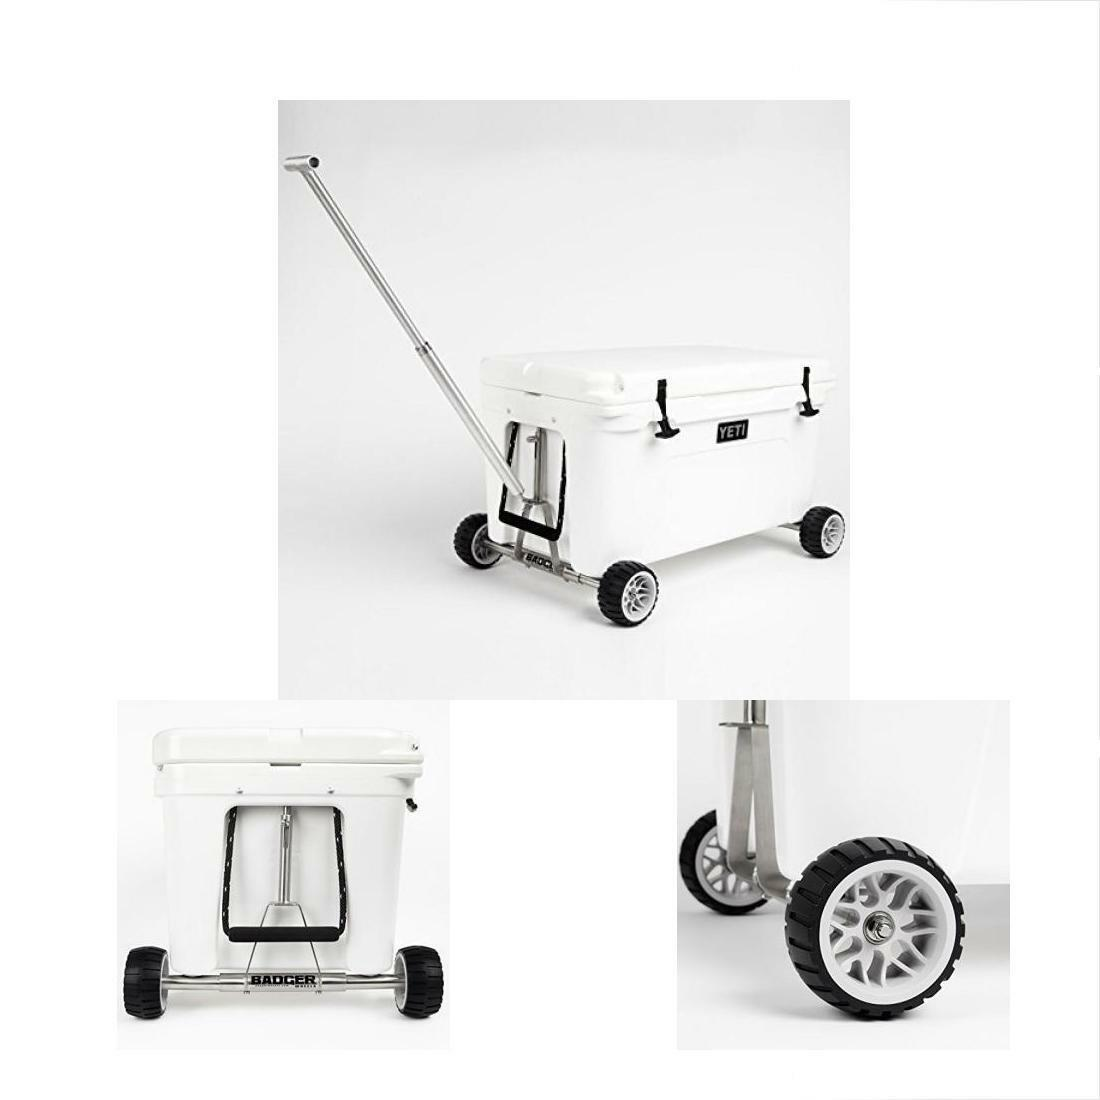 Wheels Cart Yeti Tundra 35-160 Coolers 2-Two Axles W Handle Marine-grade Durable